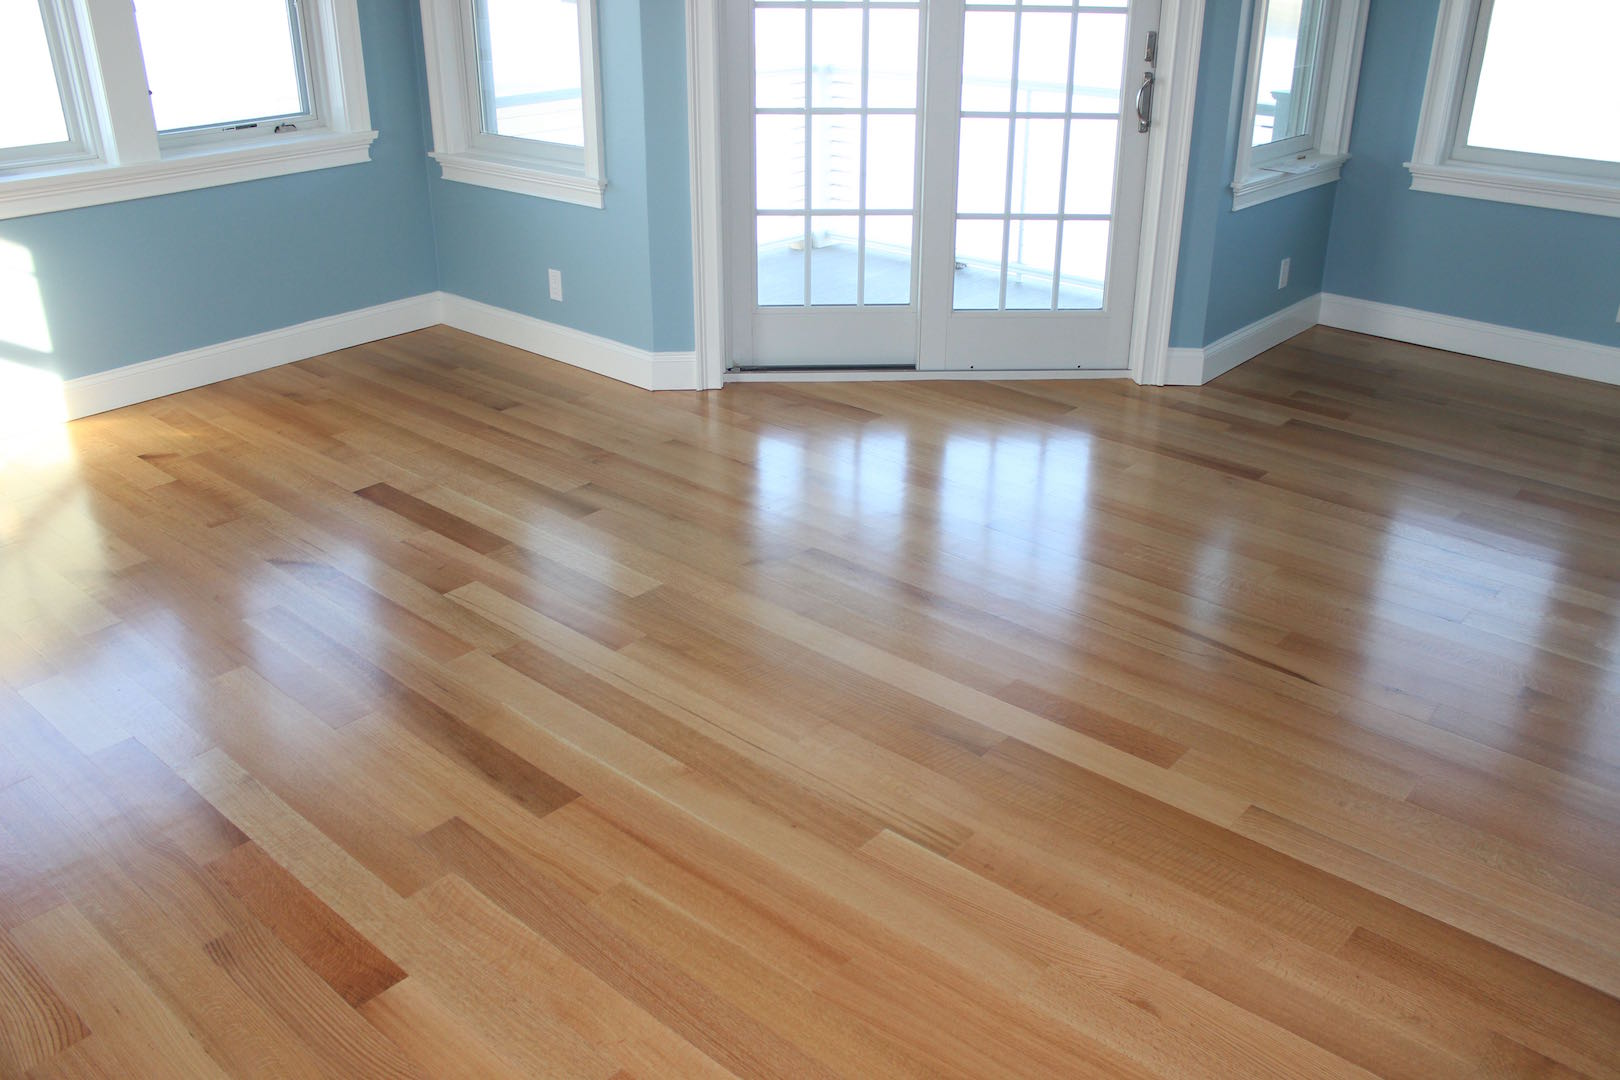 Residential Hardwood Flooring Gallery Images Of